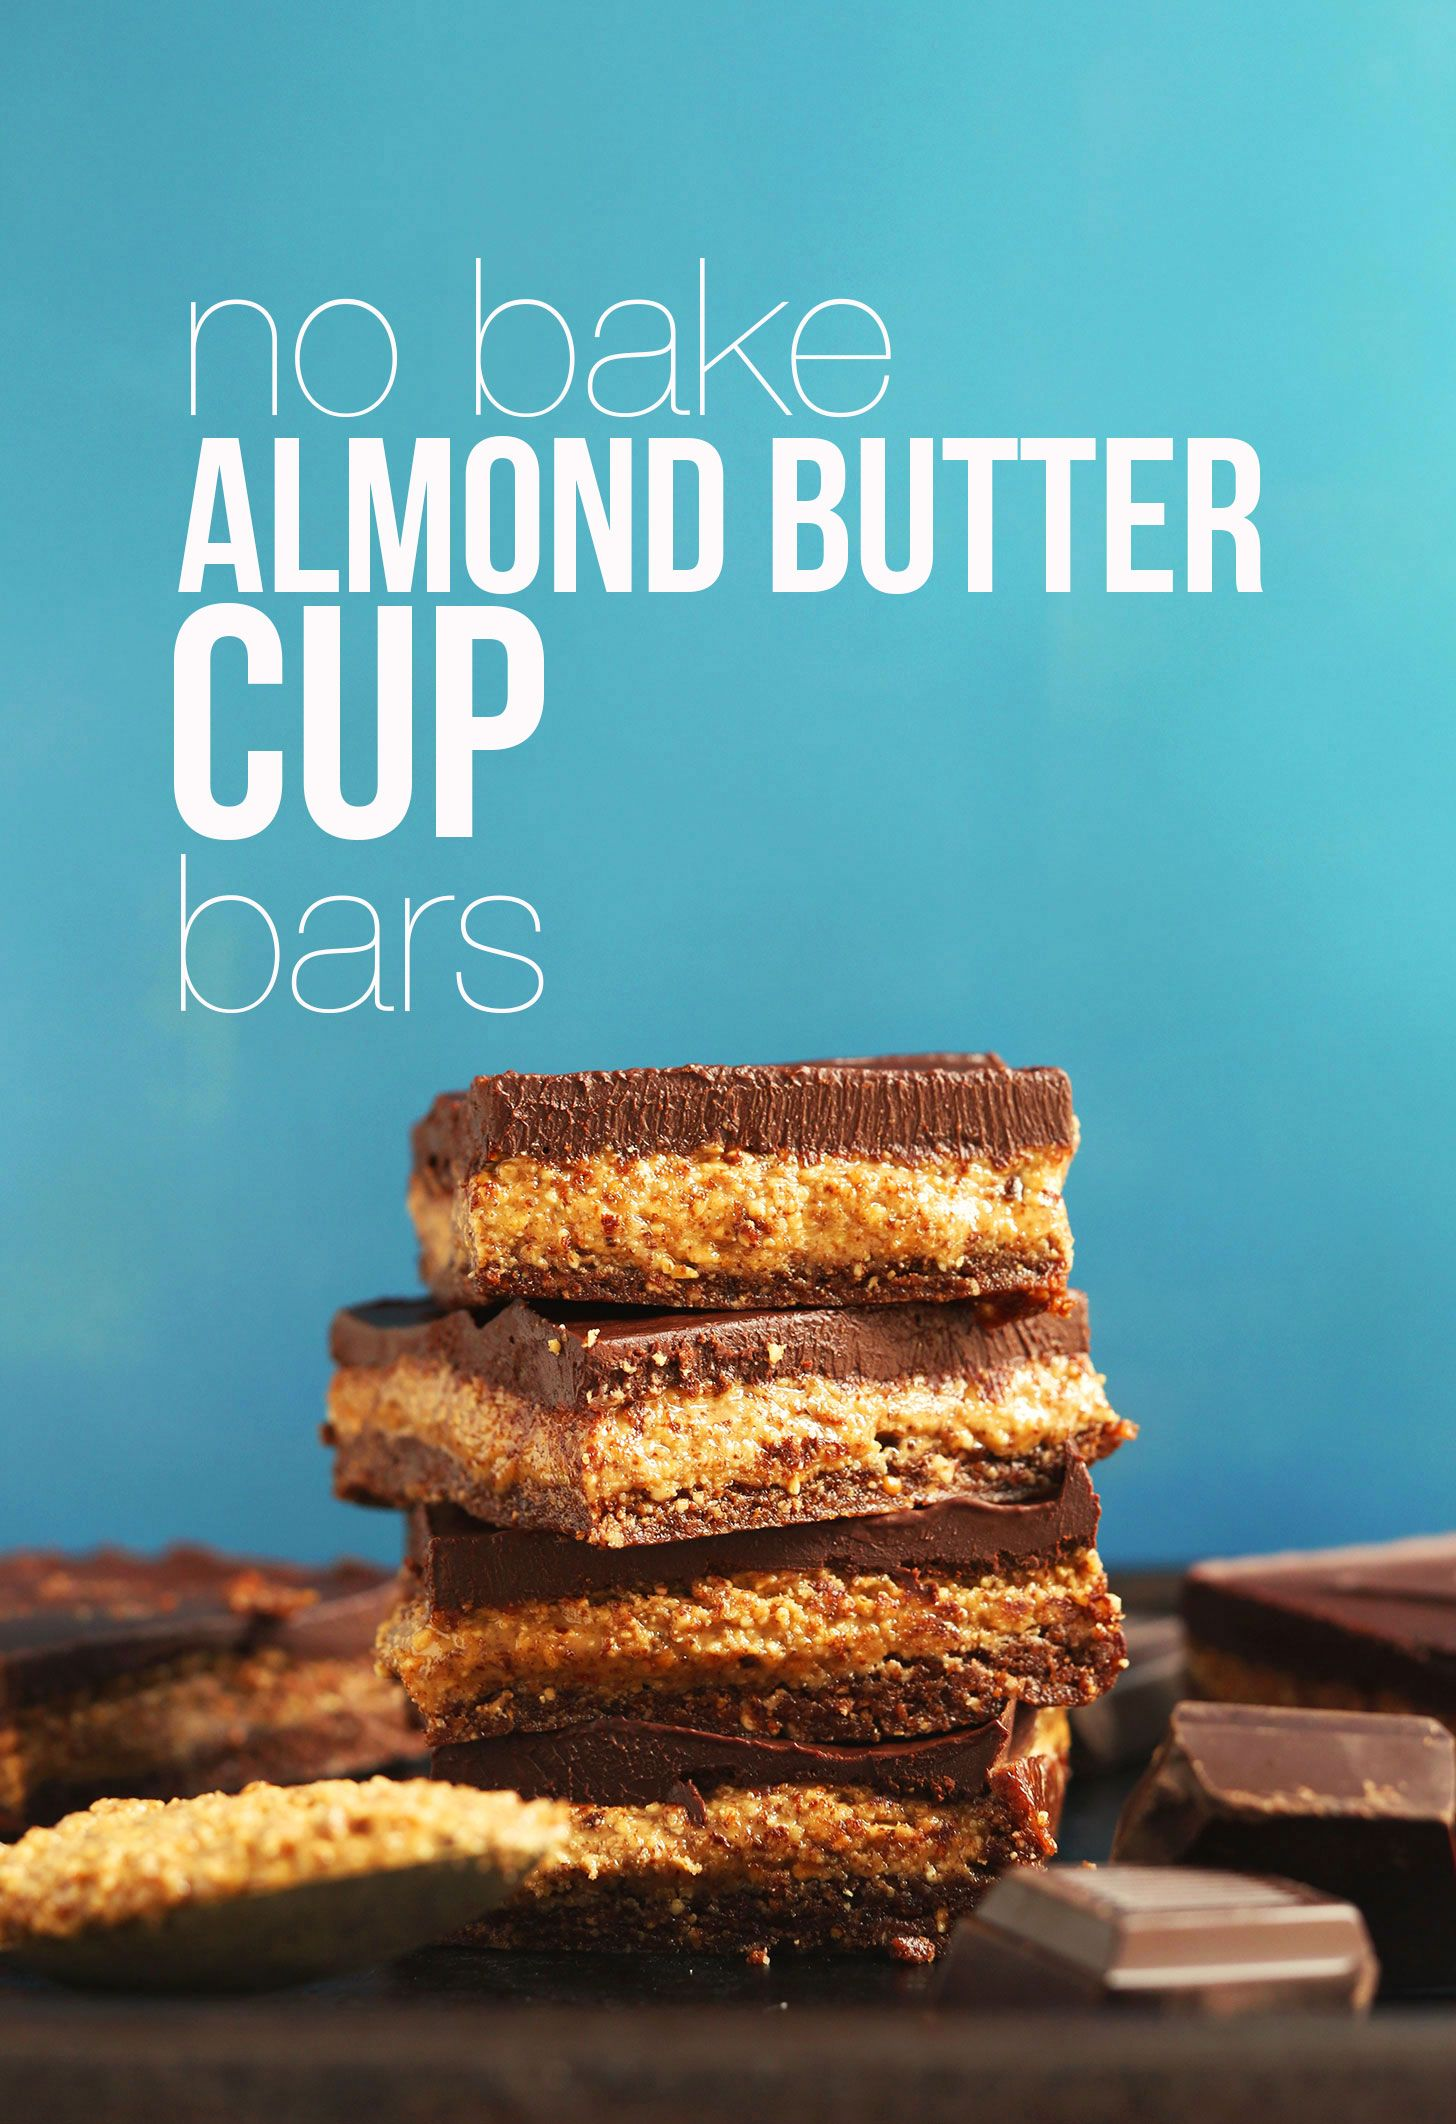 AMAZING Creamy Fudgy No Bake Vegan Almond Butter Cup Bars #GlutenFree